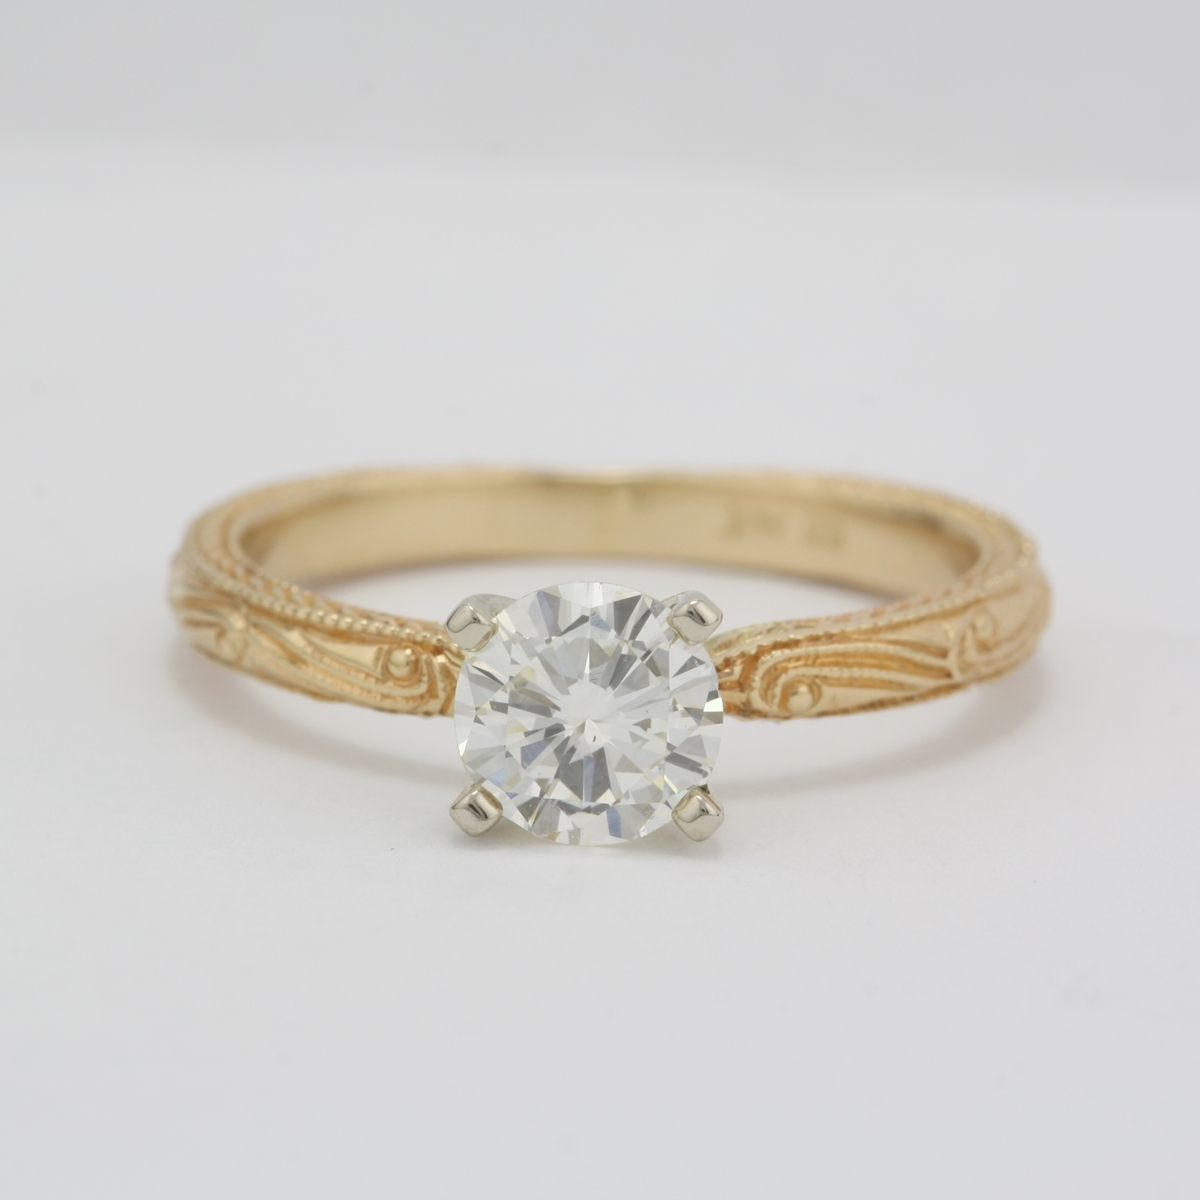 Preowned Diamond Engagement Ring With Scroll Design. Ancient Wedding Rings. Forest Wedding Rings. Scrollwork Wedding Rings. Round Cut Engagement Rings. Infinity Ring Engagement Rings. Dragon's Breath Wedding Rings. Pompom Rings. Glow Rings